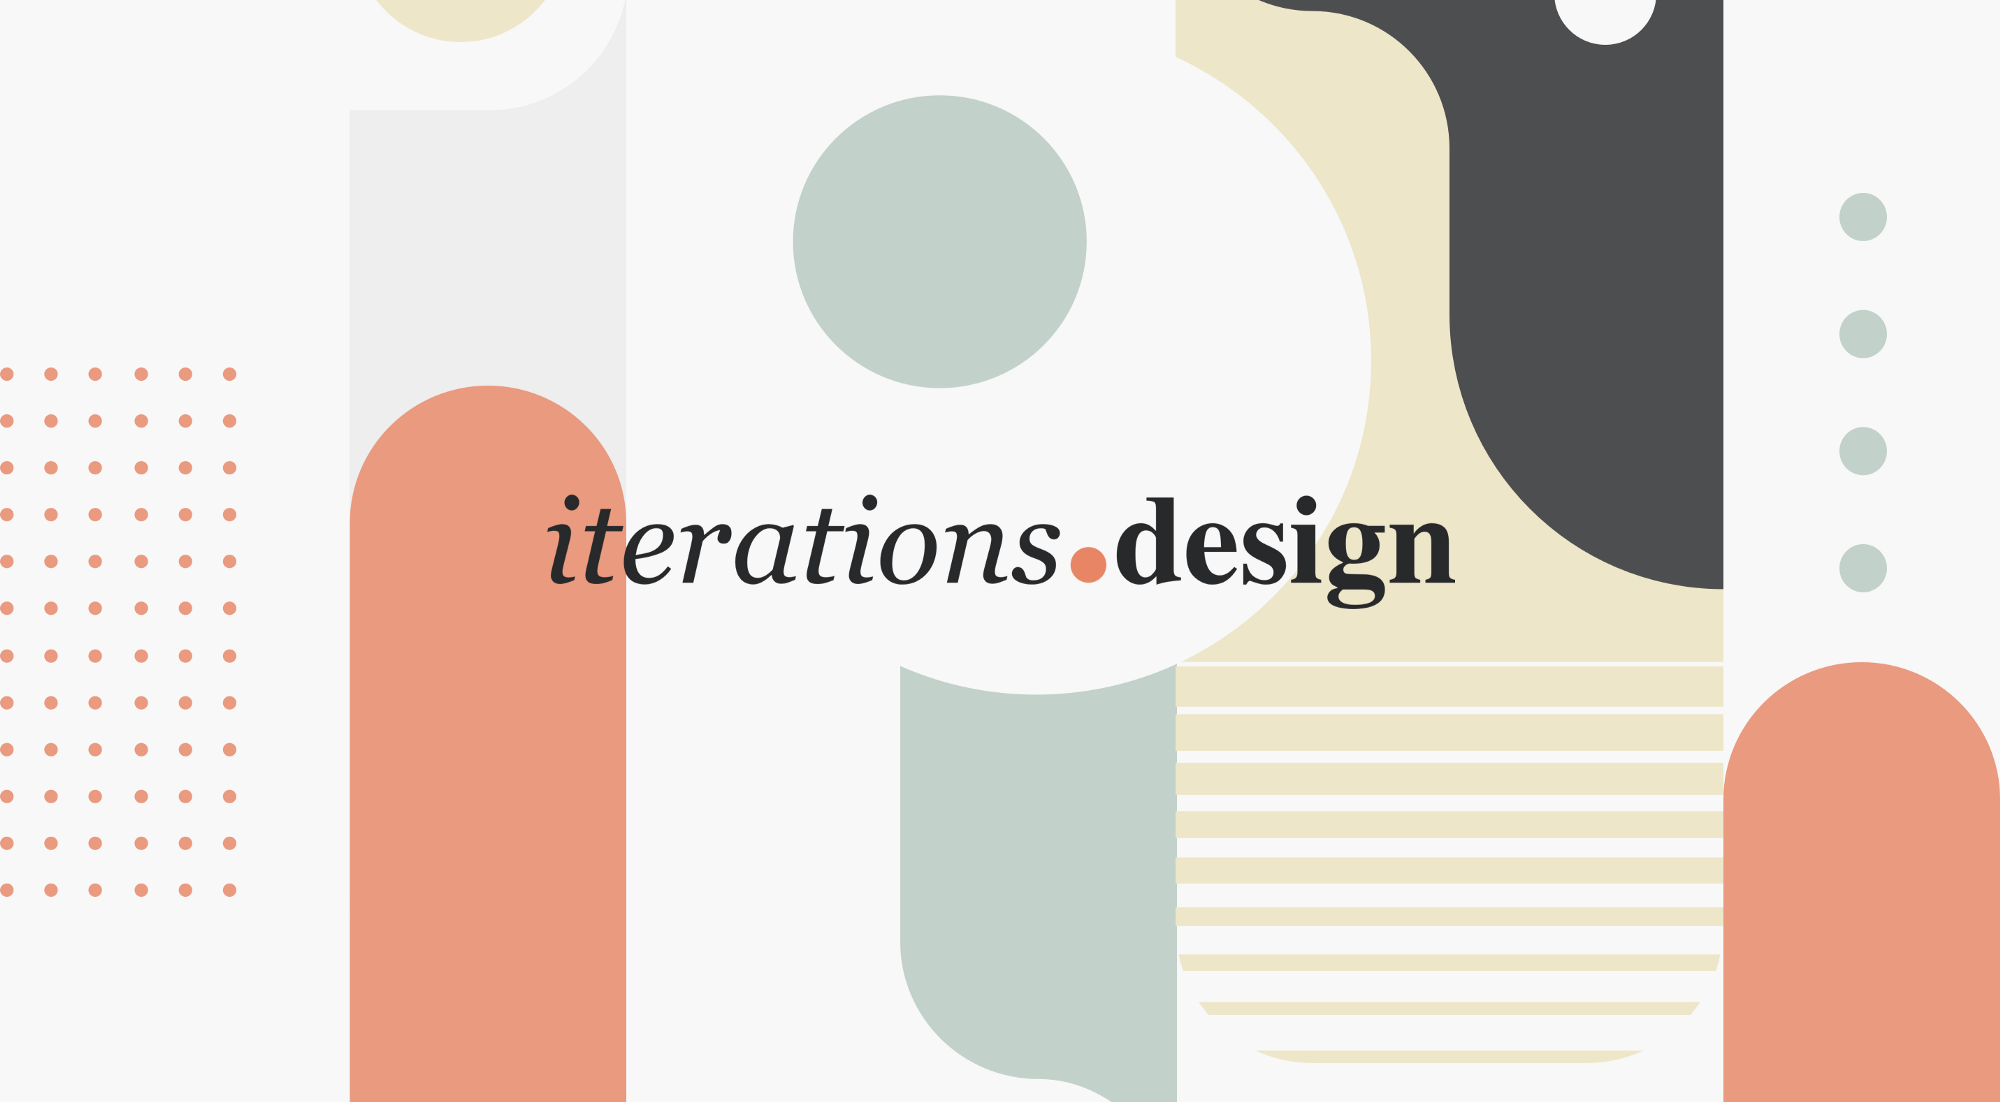 The hero image & name of iterations.design